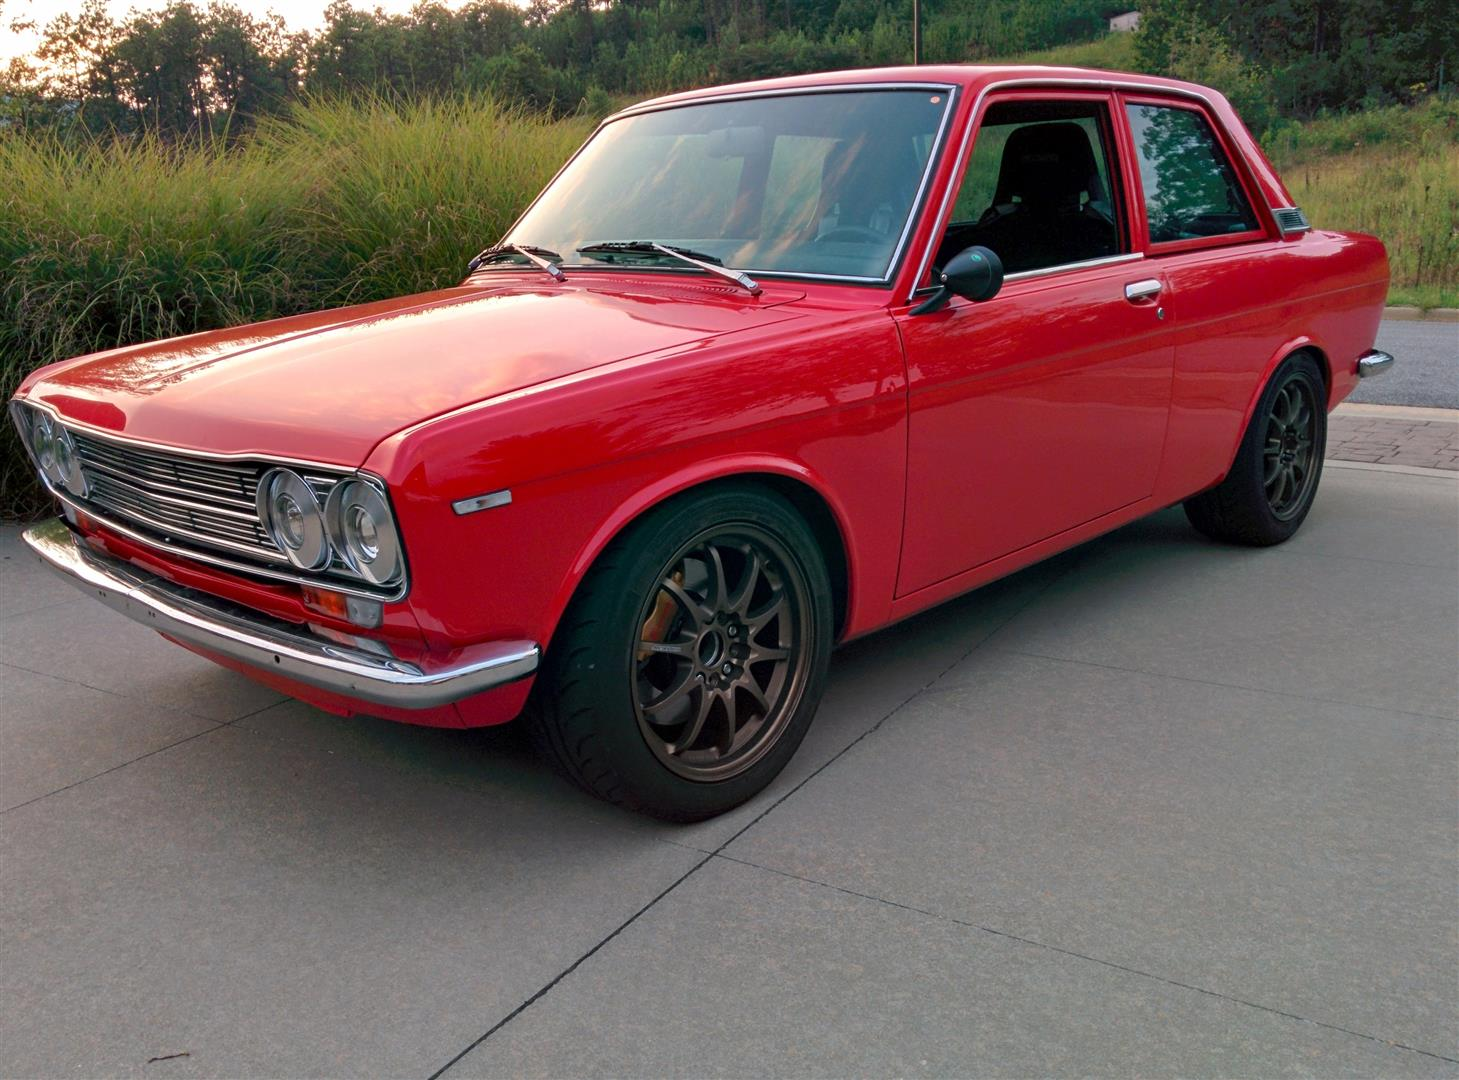 Datsun 510 with a 2.4 L LEA Ecotec inline-four